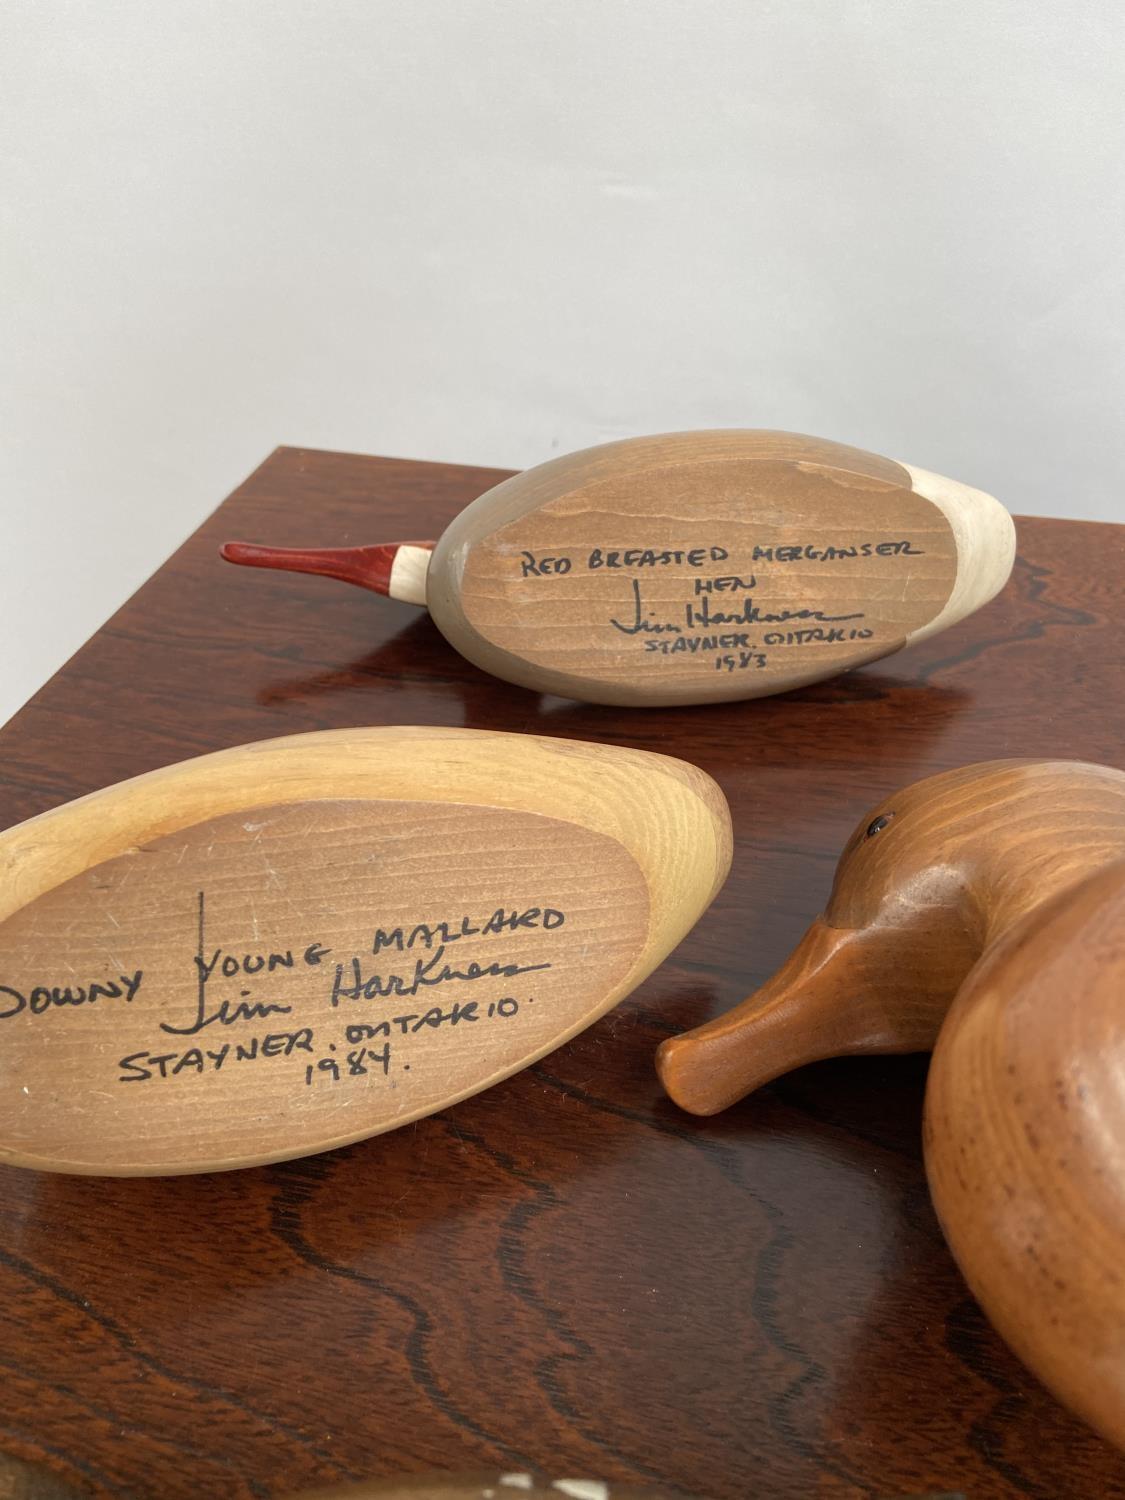 A Collection of hand carved wooden duck decoy sculptures by Jim Harkness. - Image 11 of 11